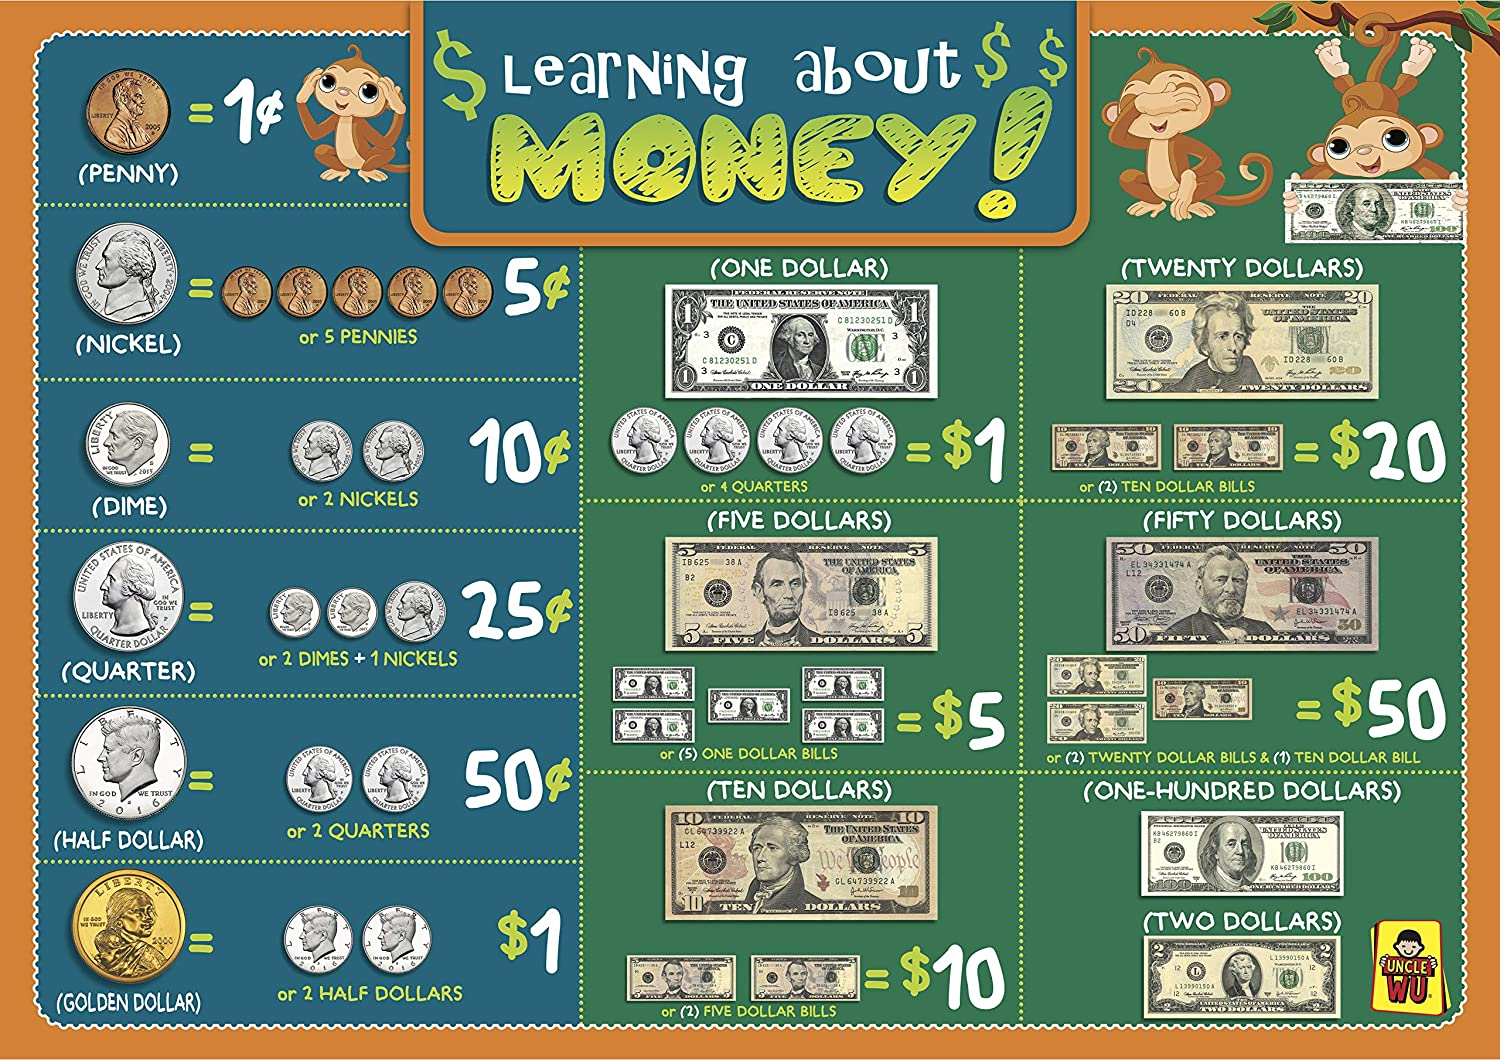 UNCLE WU Kids US Dollars Learning Kids placemats/Money Chart Post Wall - 16 x 12 inch Waterproof Placemat